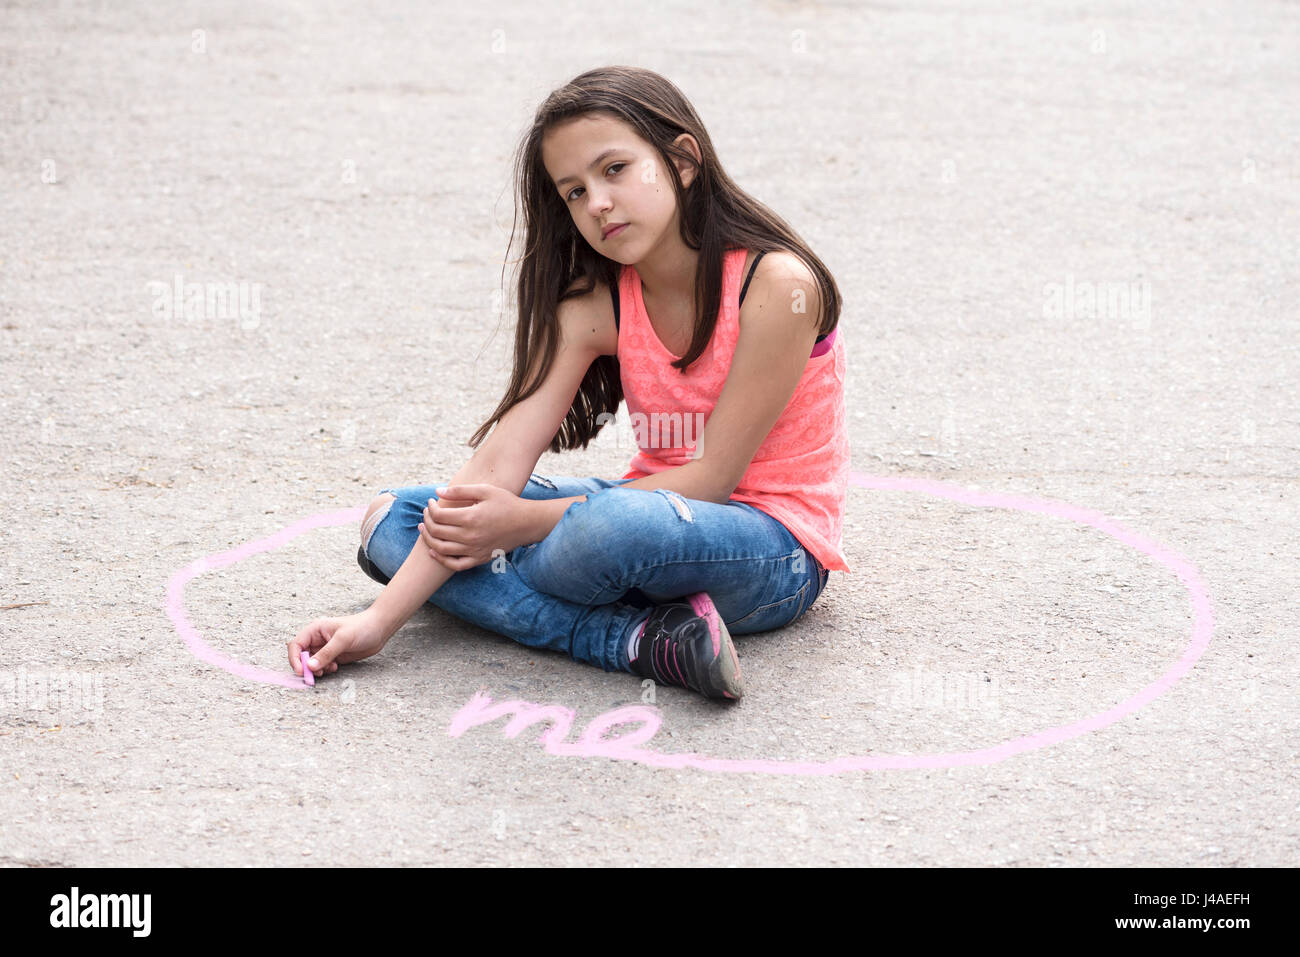 Intimate zone and body language with preteen girl - Stock Image